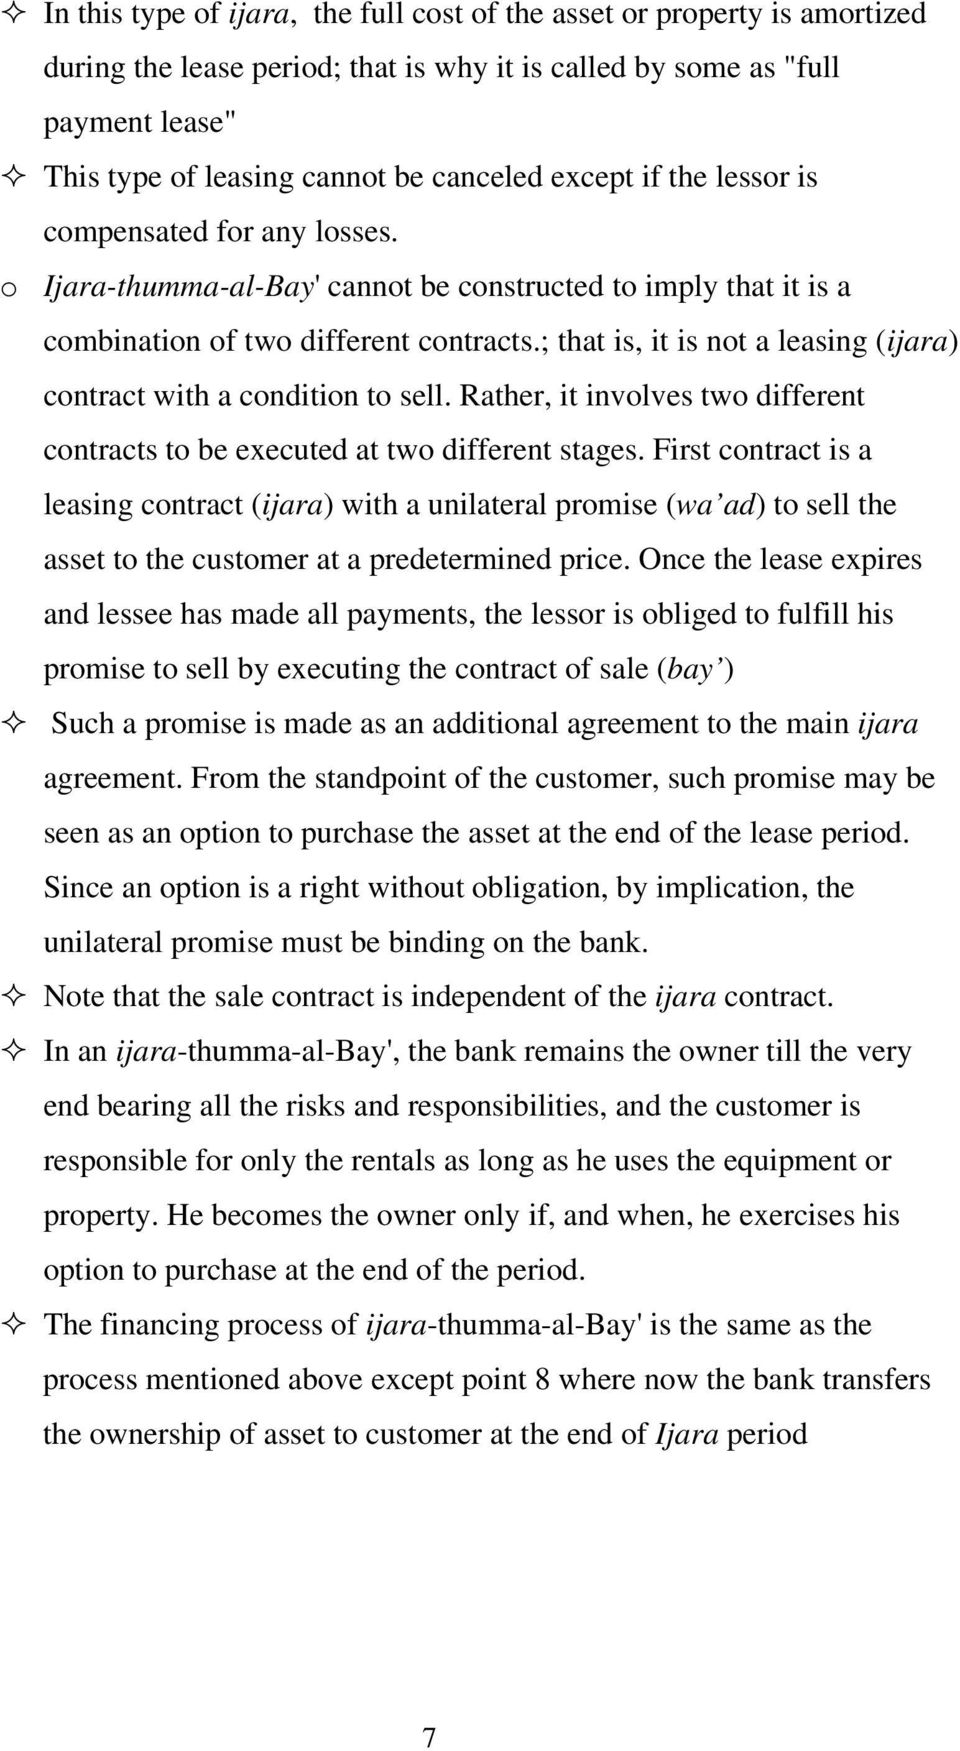 ; that is, it is not a leasing (ijara) contract with a condition to sell. Rather, it involves two different contracts to be executed at two different stages.